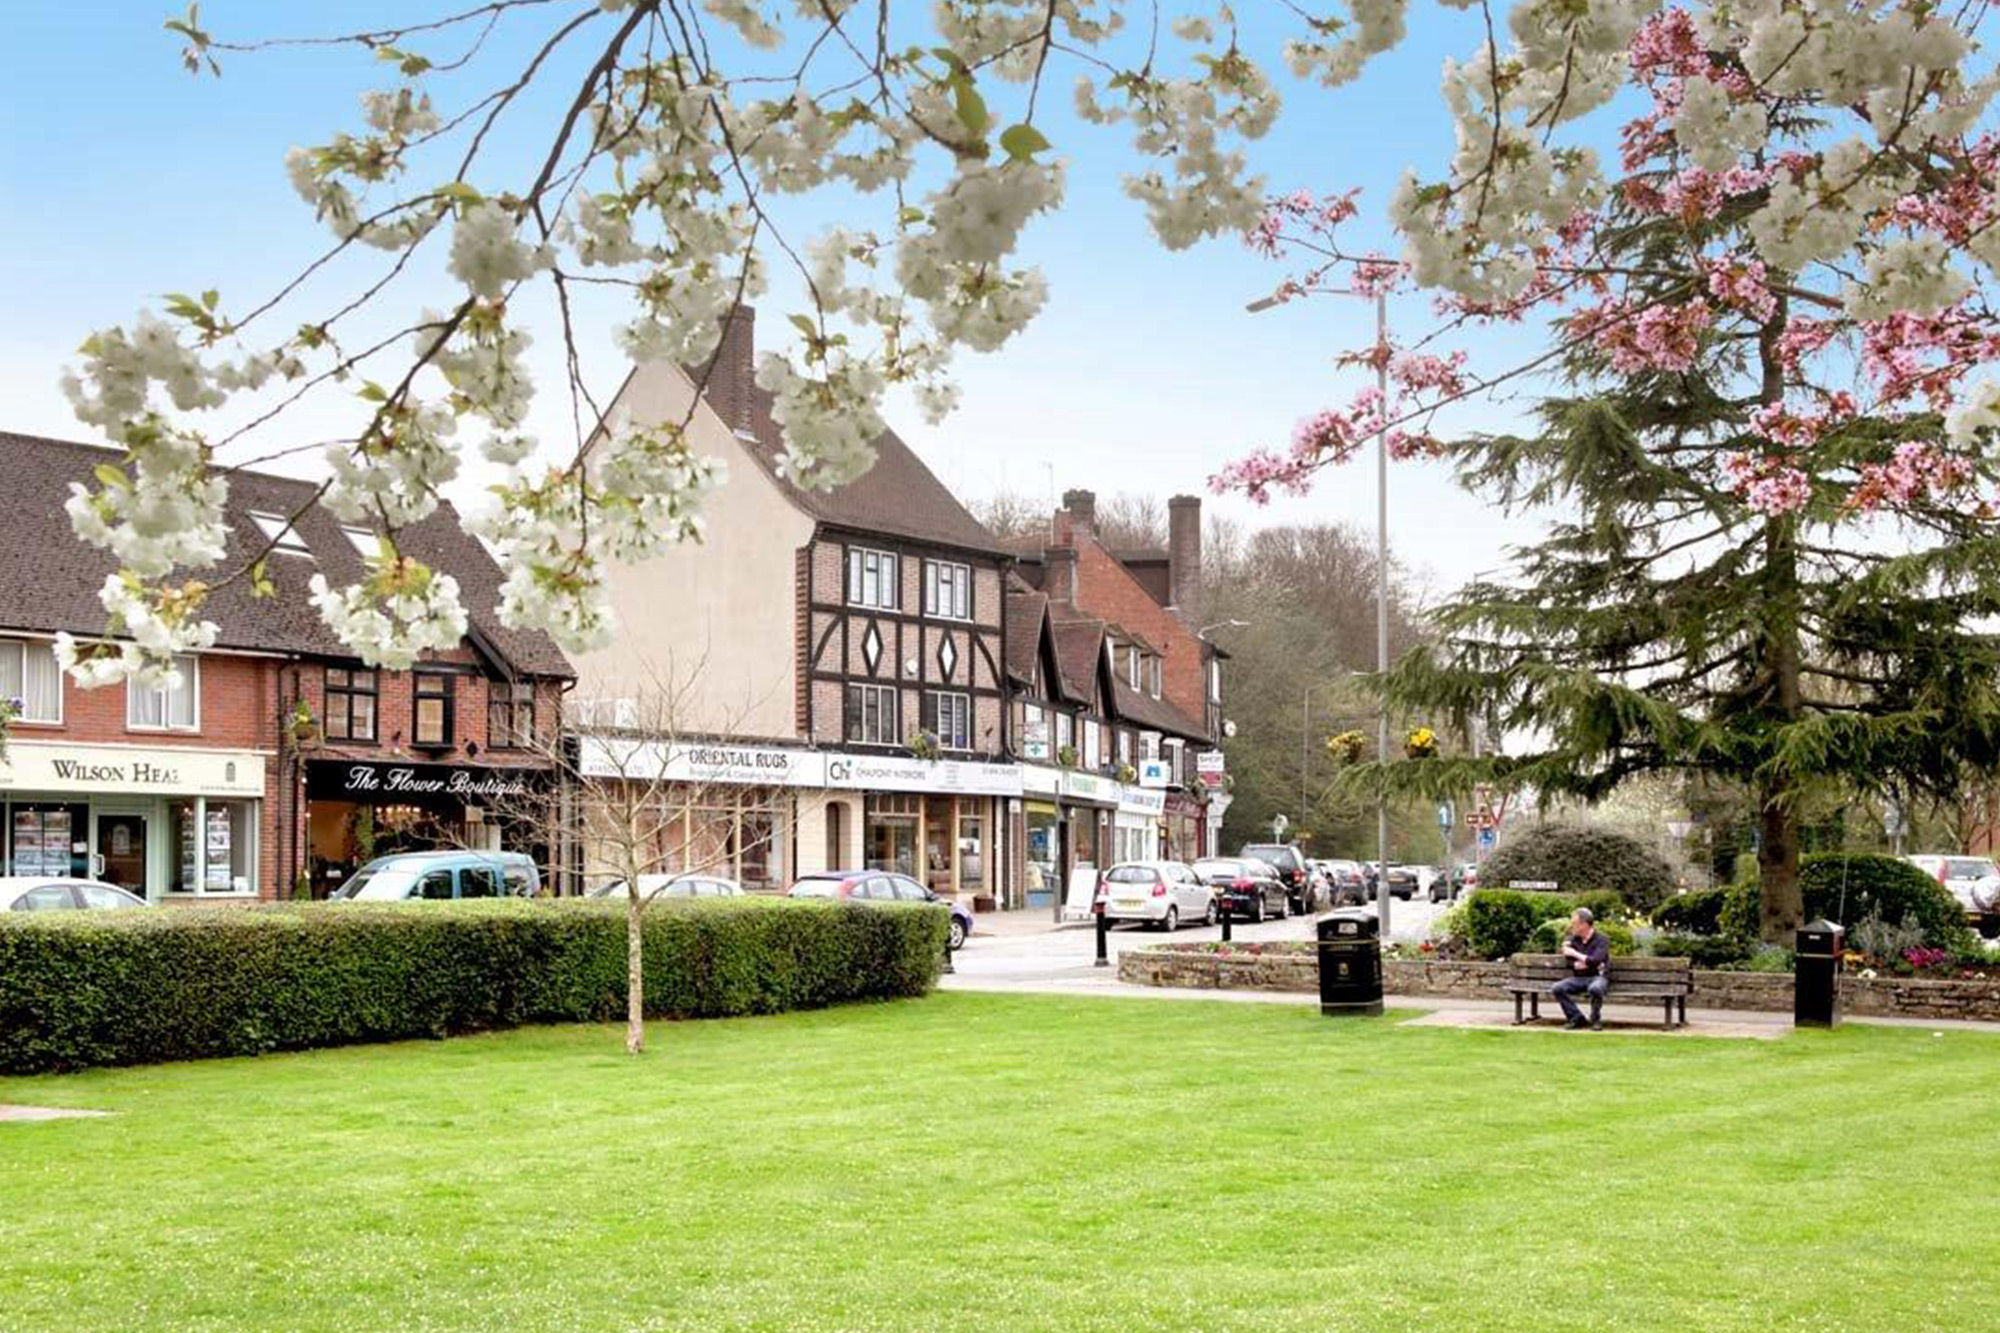 Homes For Sale Little Chalfont